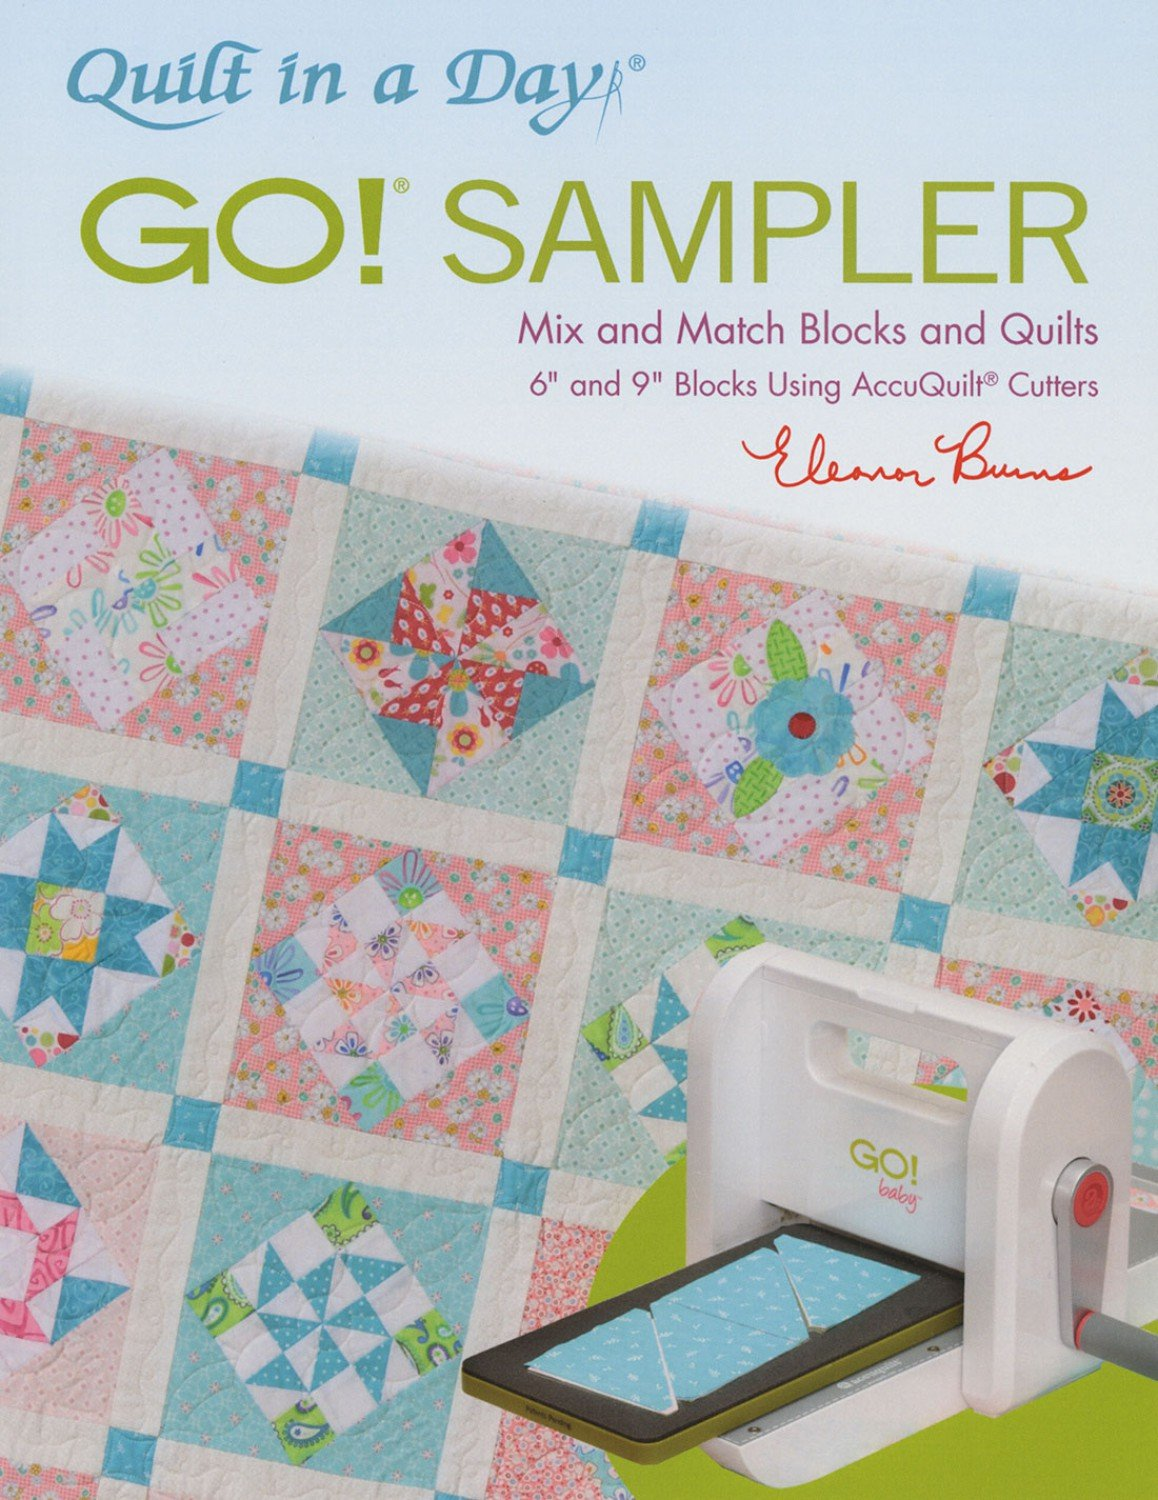 Go! Sampler from Quilt in a Day